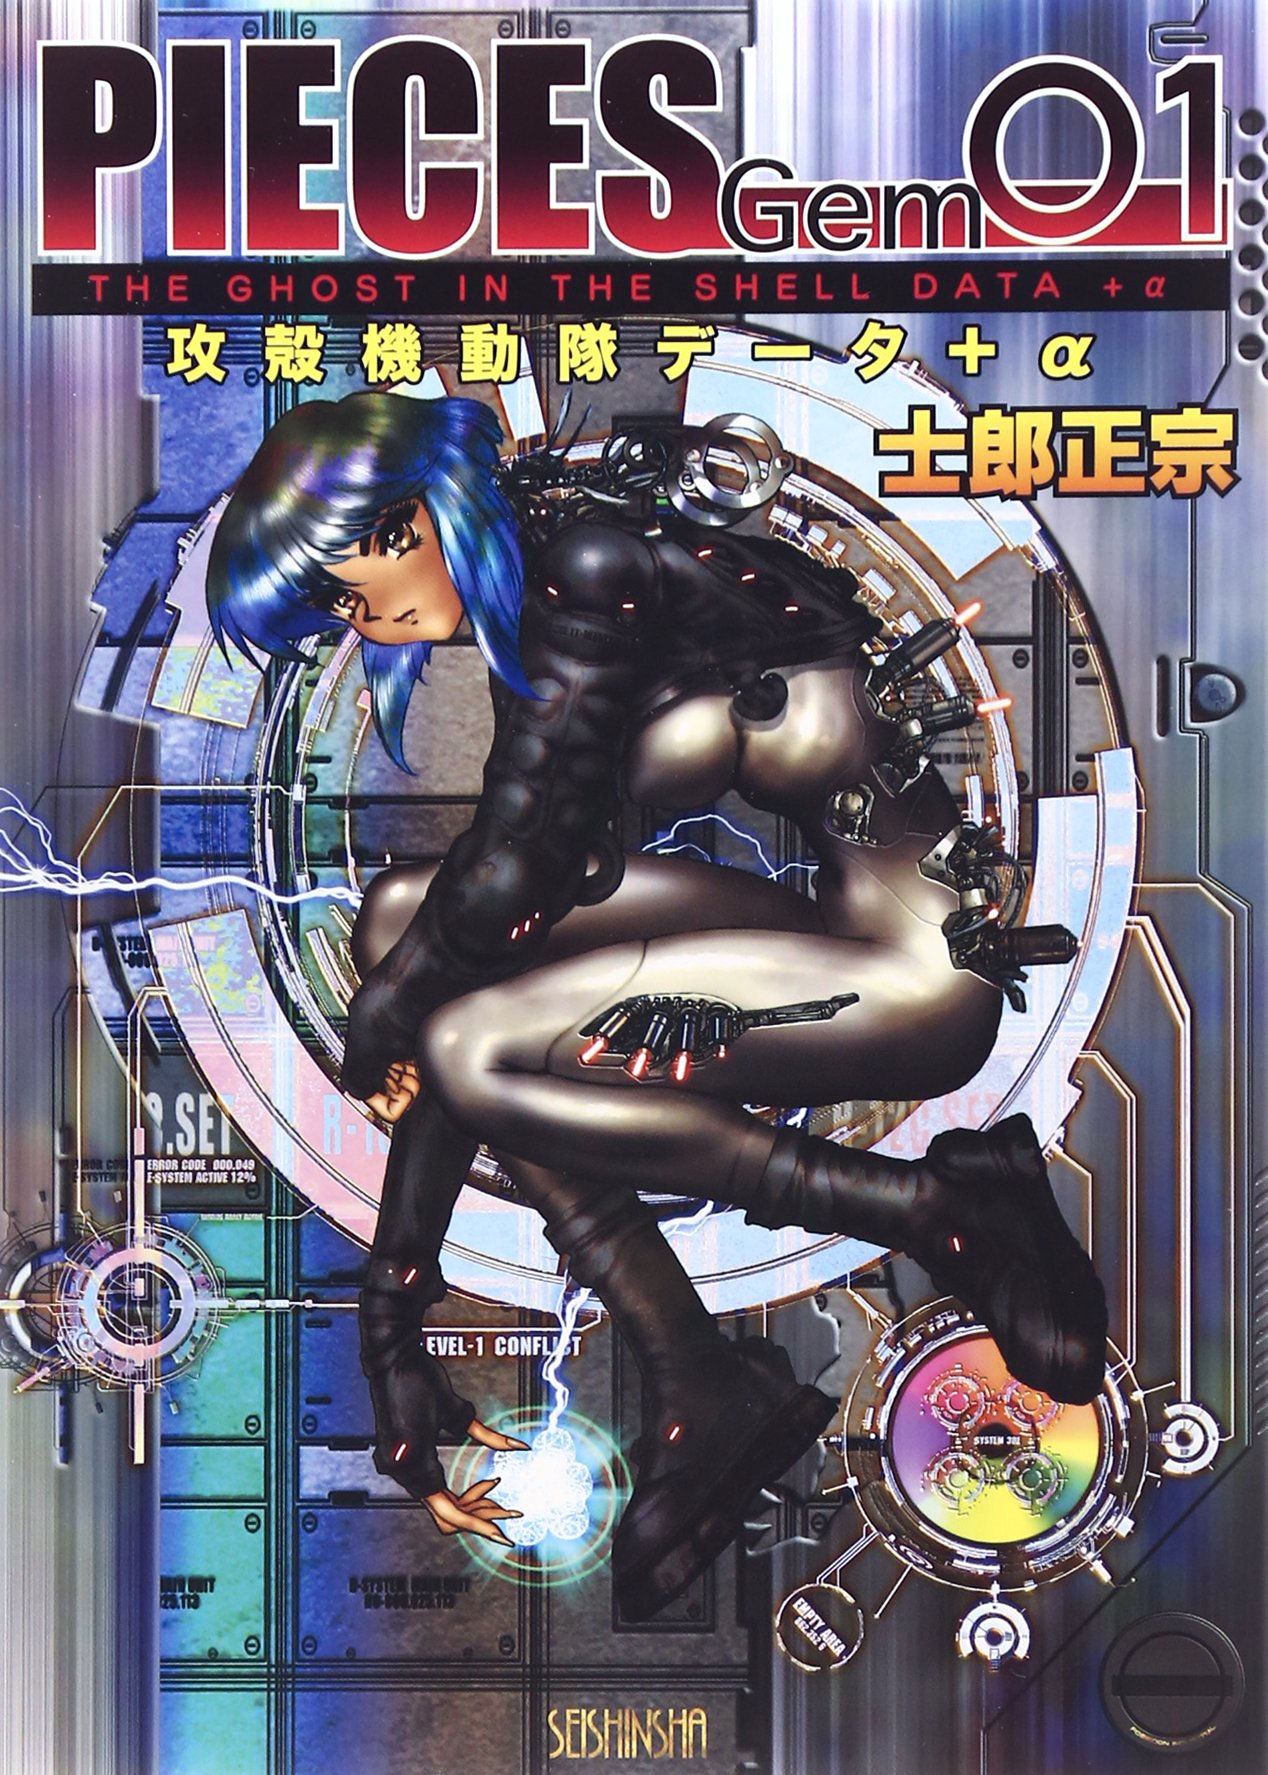 Read Online PIECES Gem 01 Ghost in the Shell data + α (Masamune Shirow) [JAPANESE EDITION] PDF